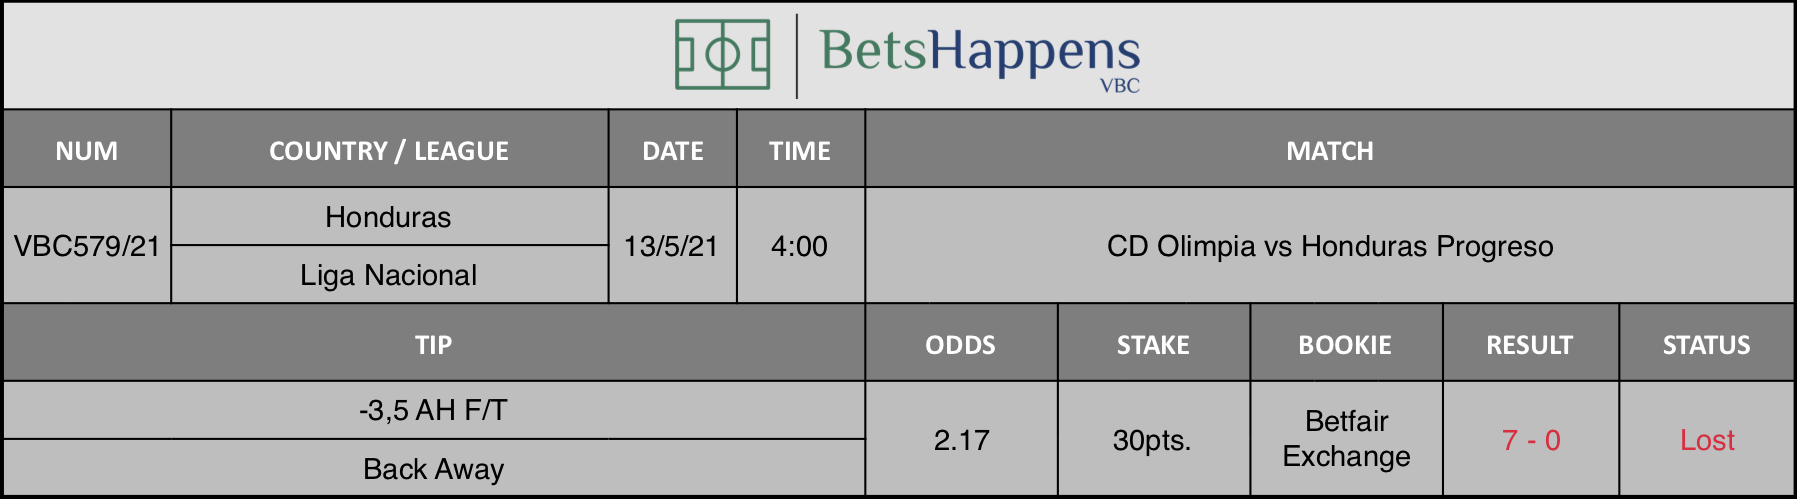 Results of our tip for the CD Olimpia vs Honduras Progreso match where -3,5 AH F/T Back Away is recommended.